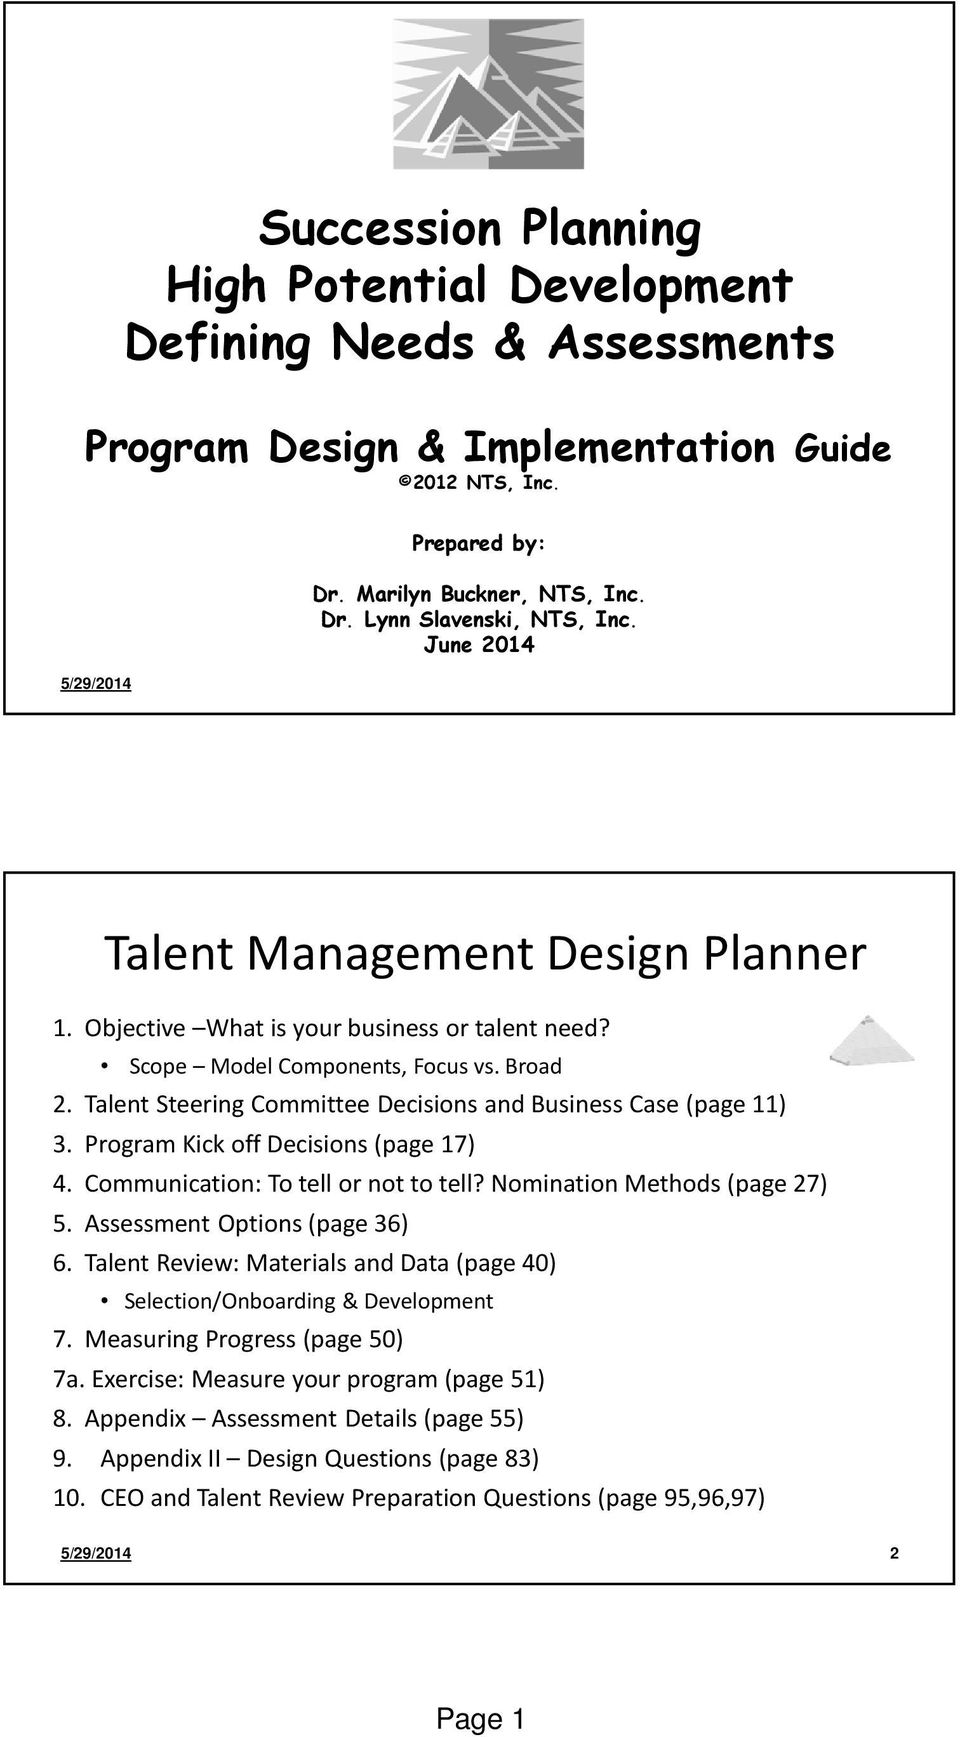 Talent Steering Committee Decisions and Business Case (page 11) 3. Program Kick off Decisions (page 17) 4. Communication: To tell or not to tell? Nomination Methods (page 27) 5.